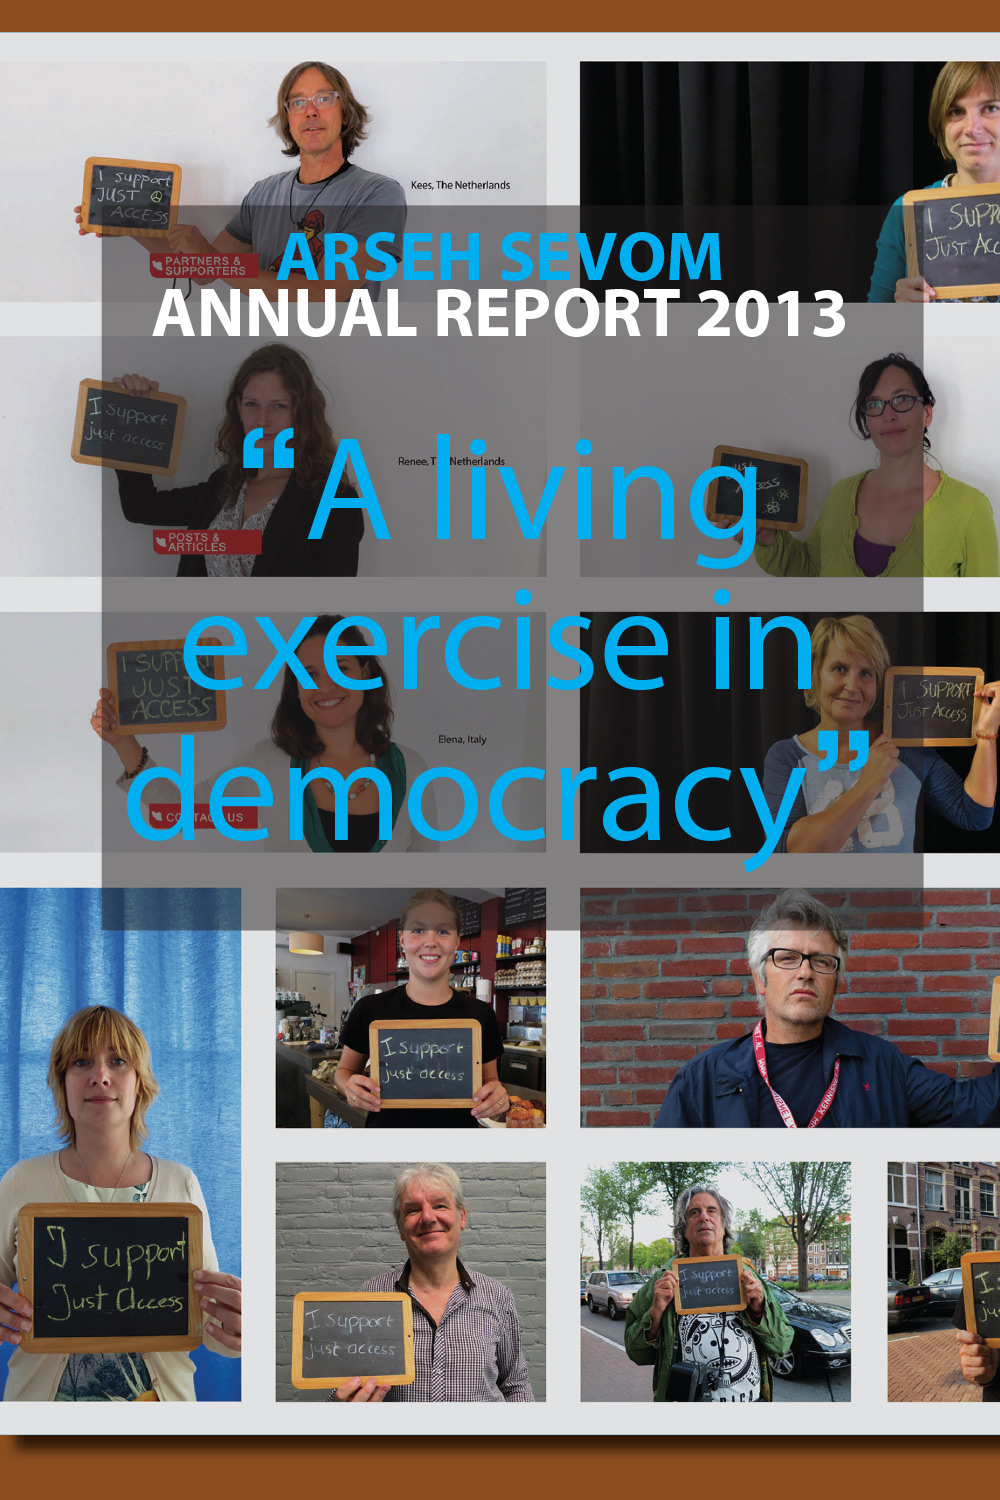 arseh-sevom-annual-report-2013